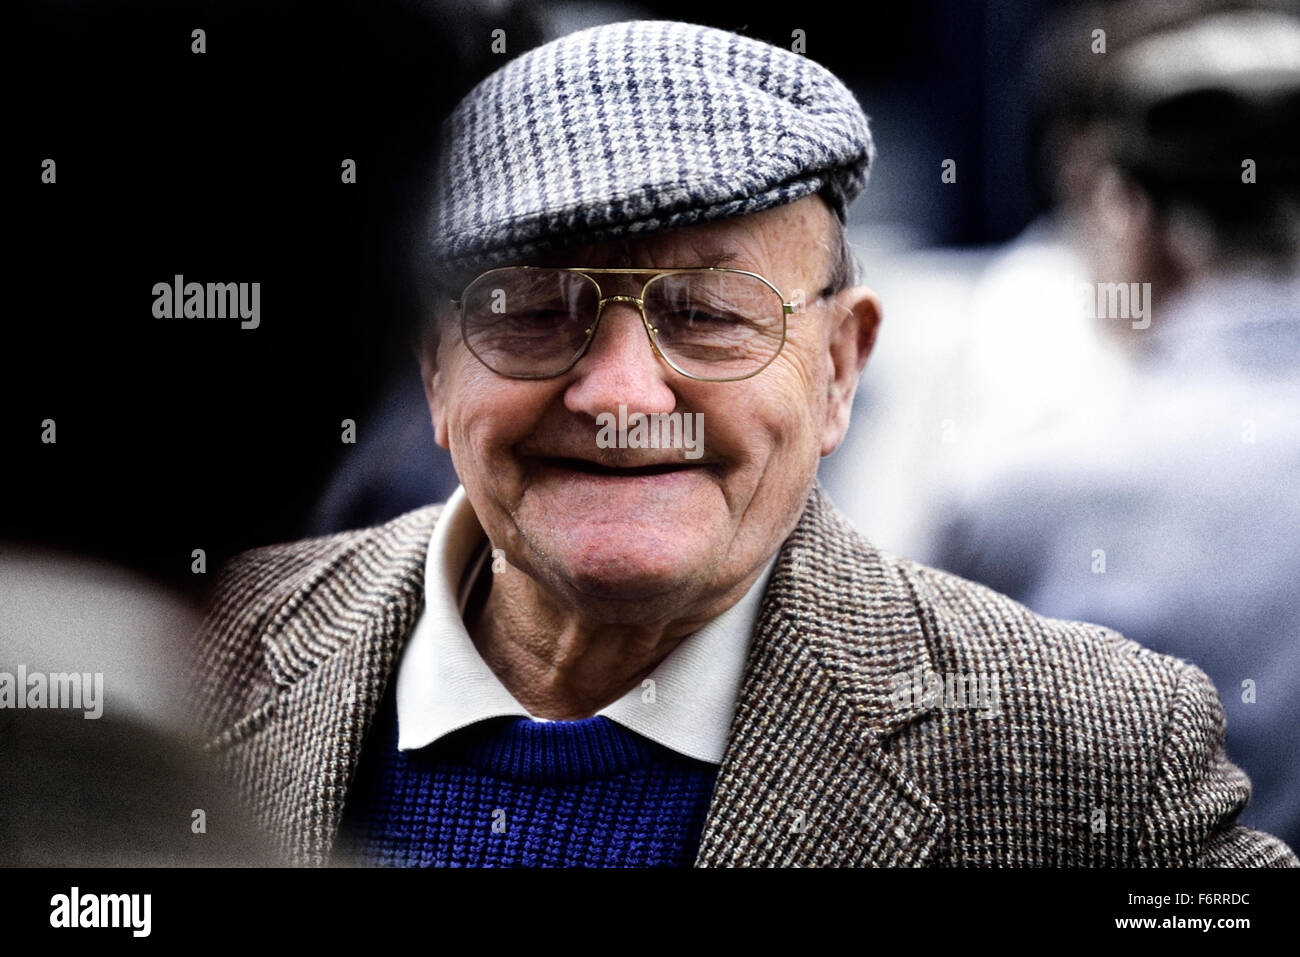 A smiling old gentleman wearing a tweed cloth cap and jacket - Stock Image